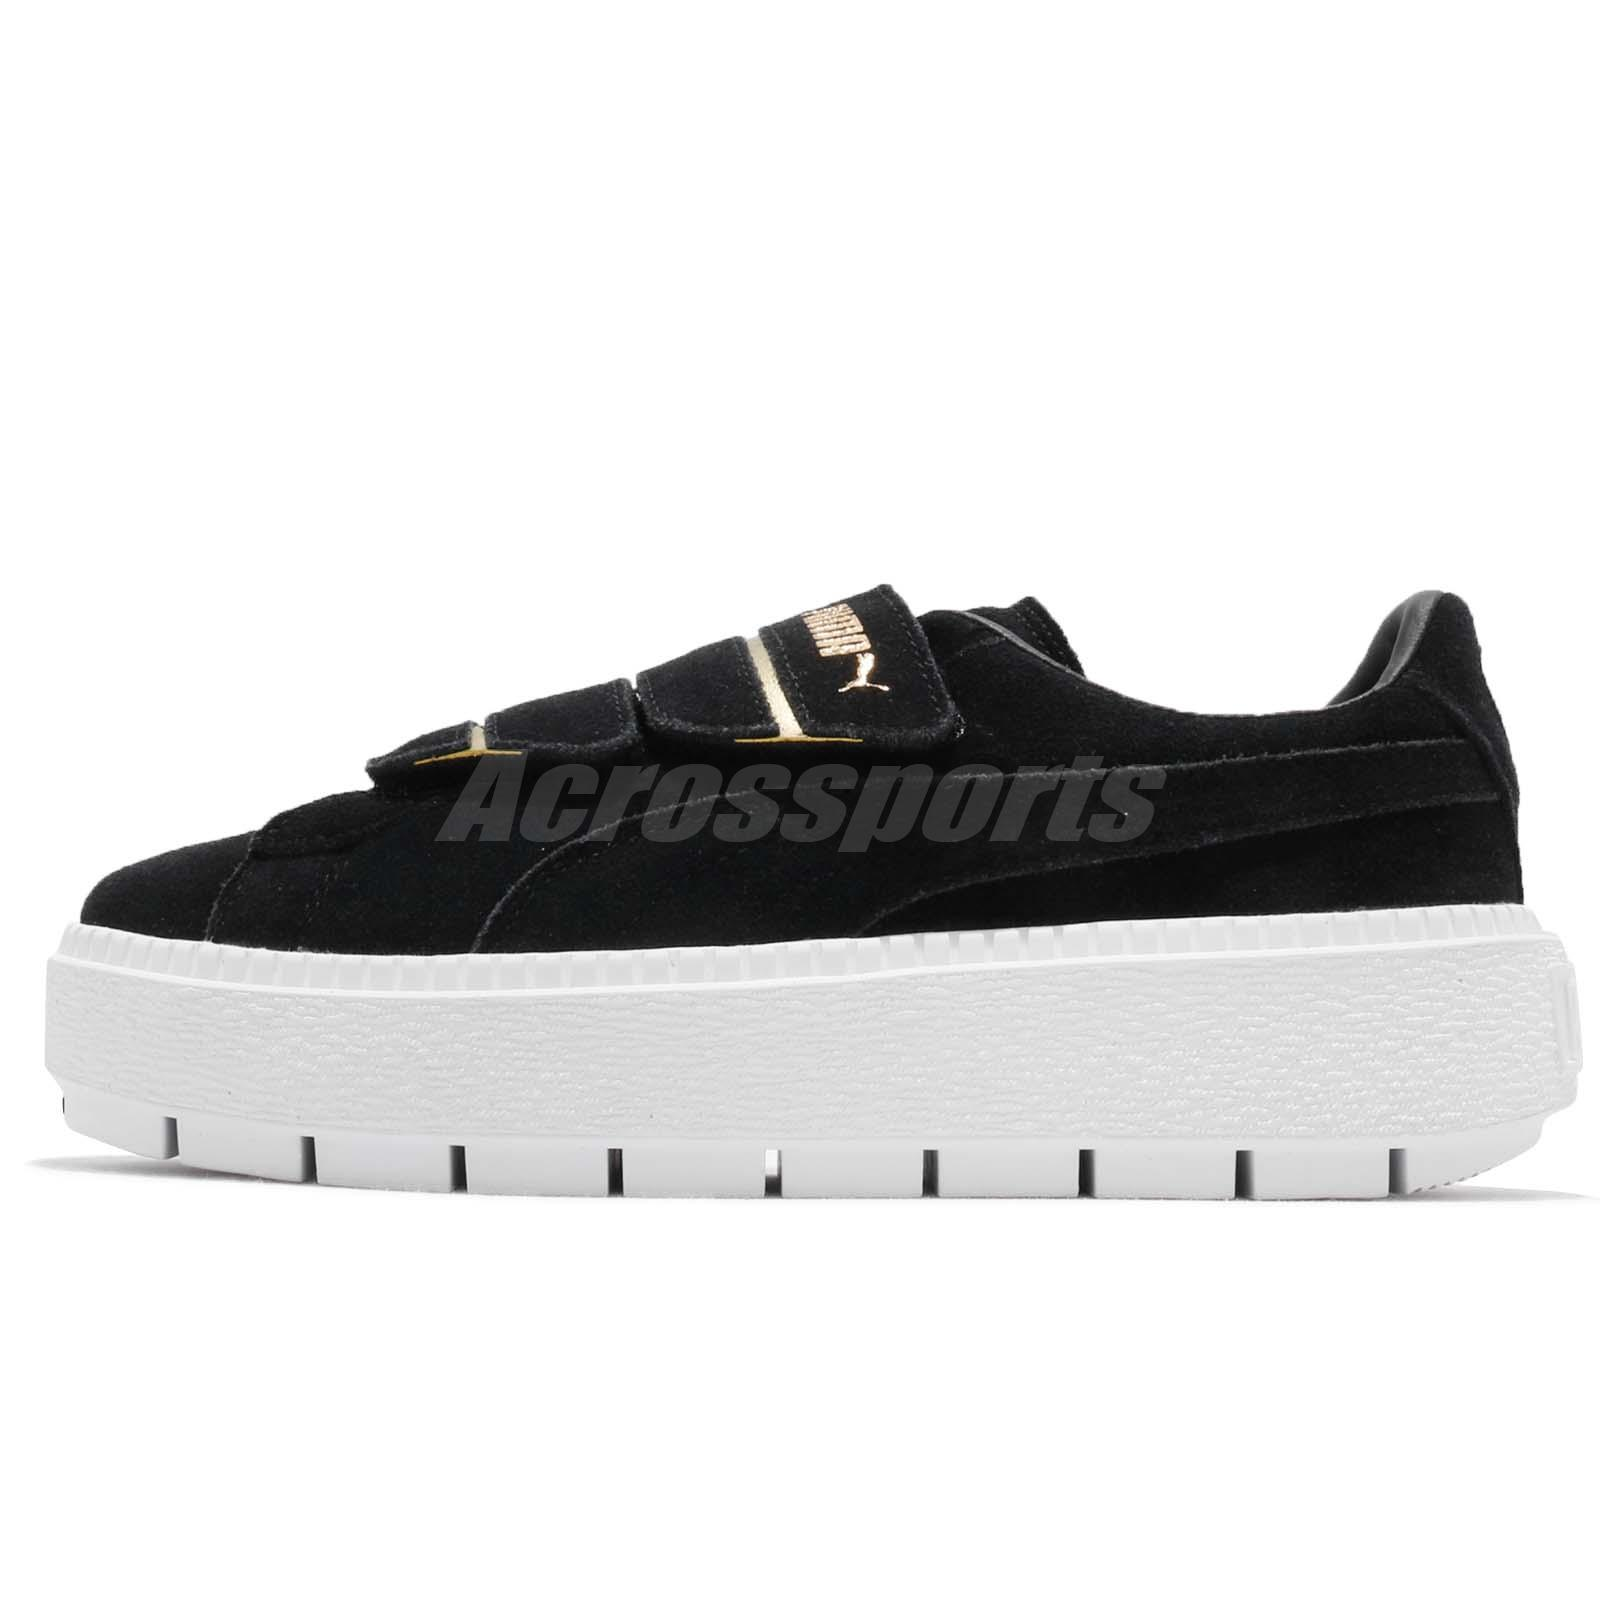 Puma Platform Trace Strap Wns Black White Women Casual Shoes Sneakers 366709 -02 17cad973b